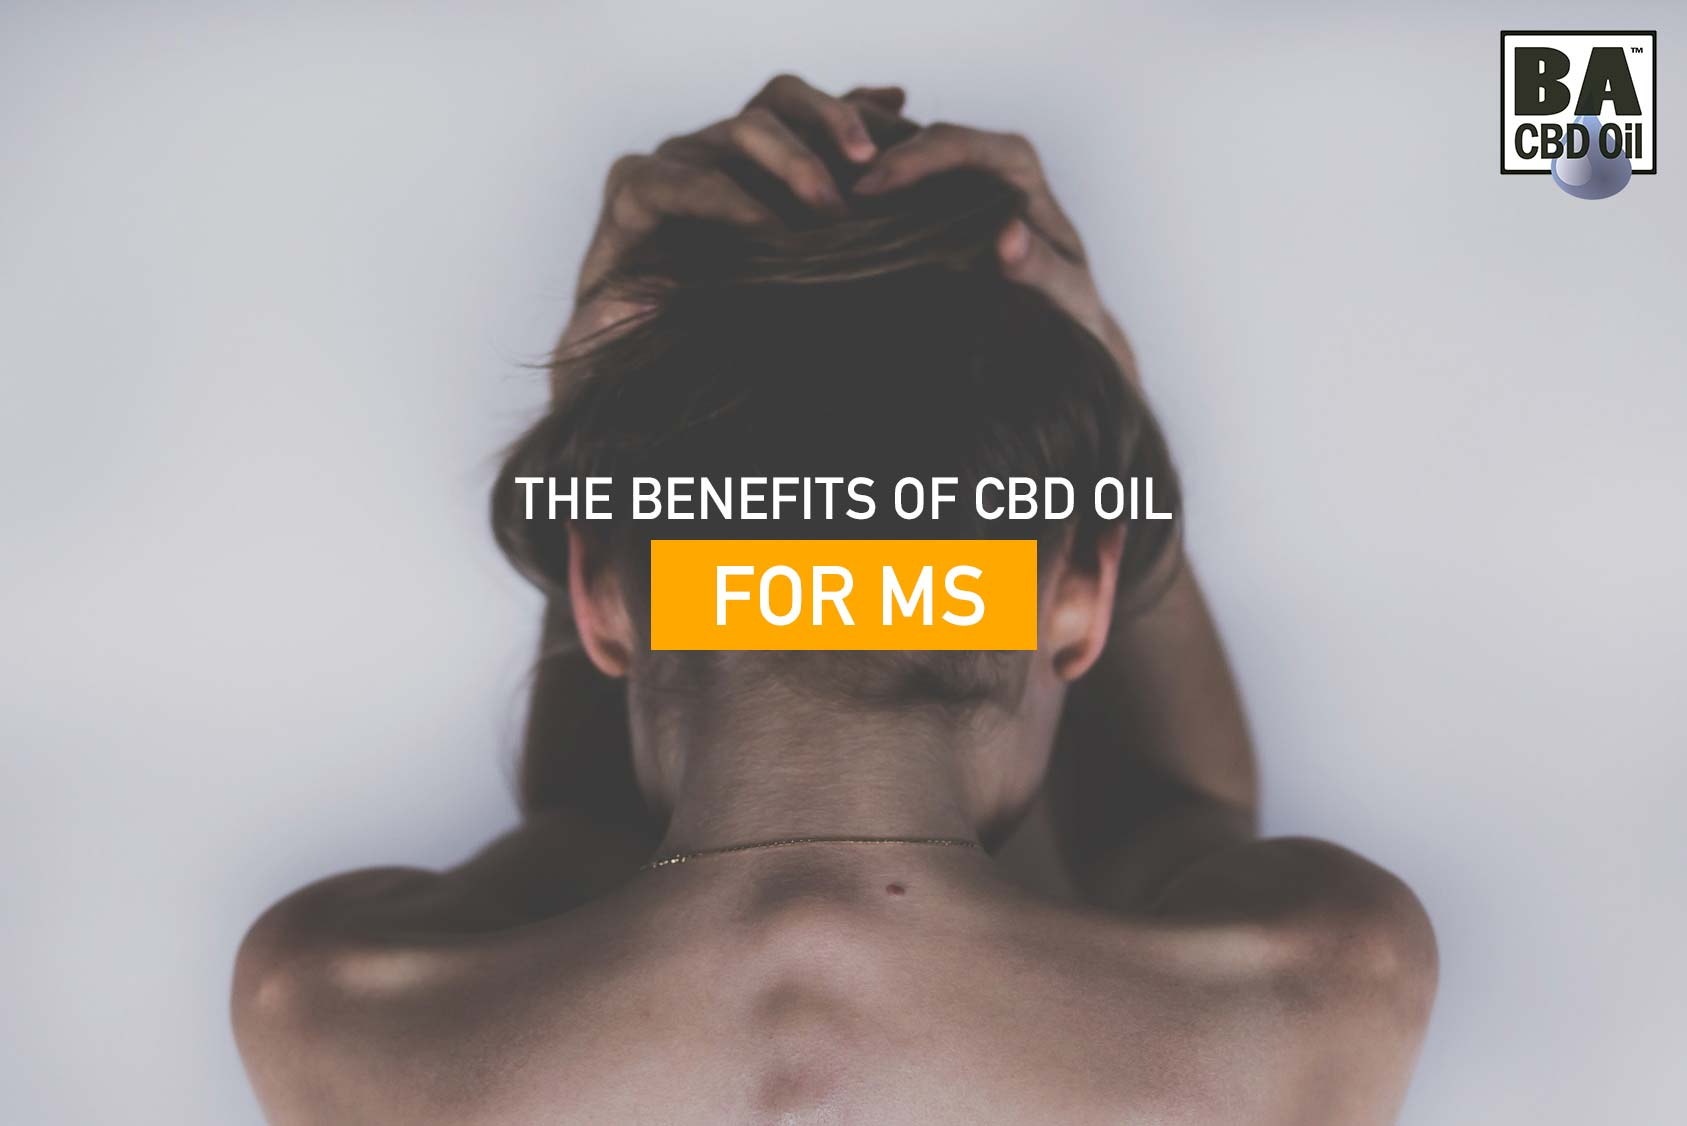 Benefits Of CBD Oil For MS